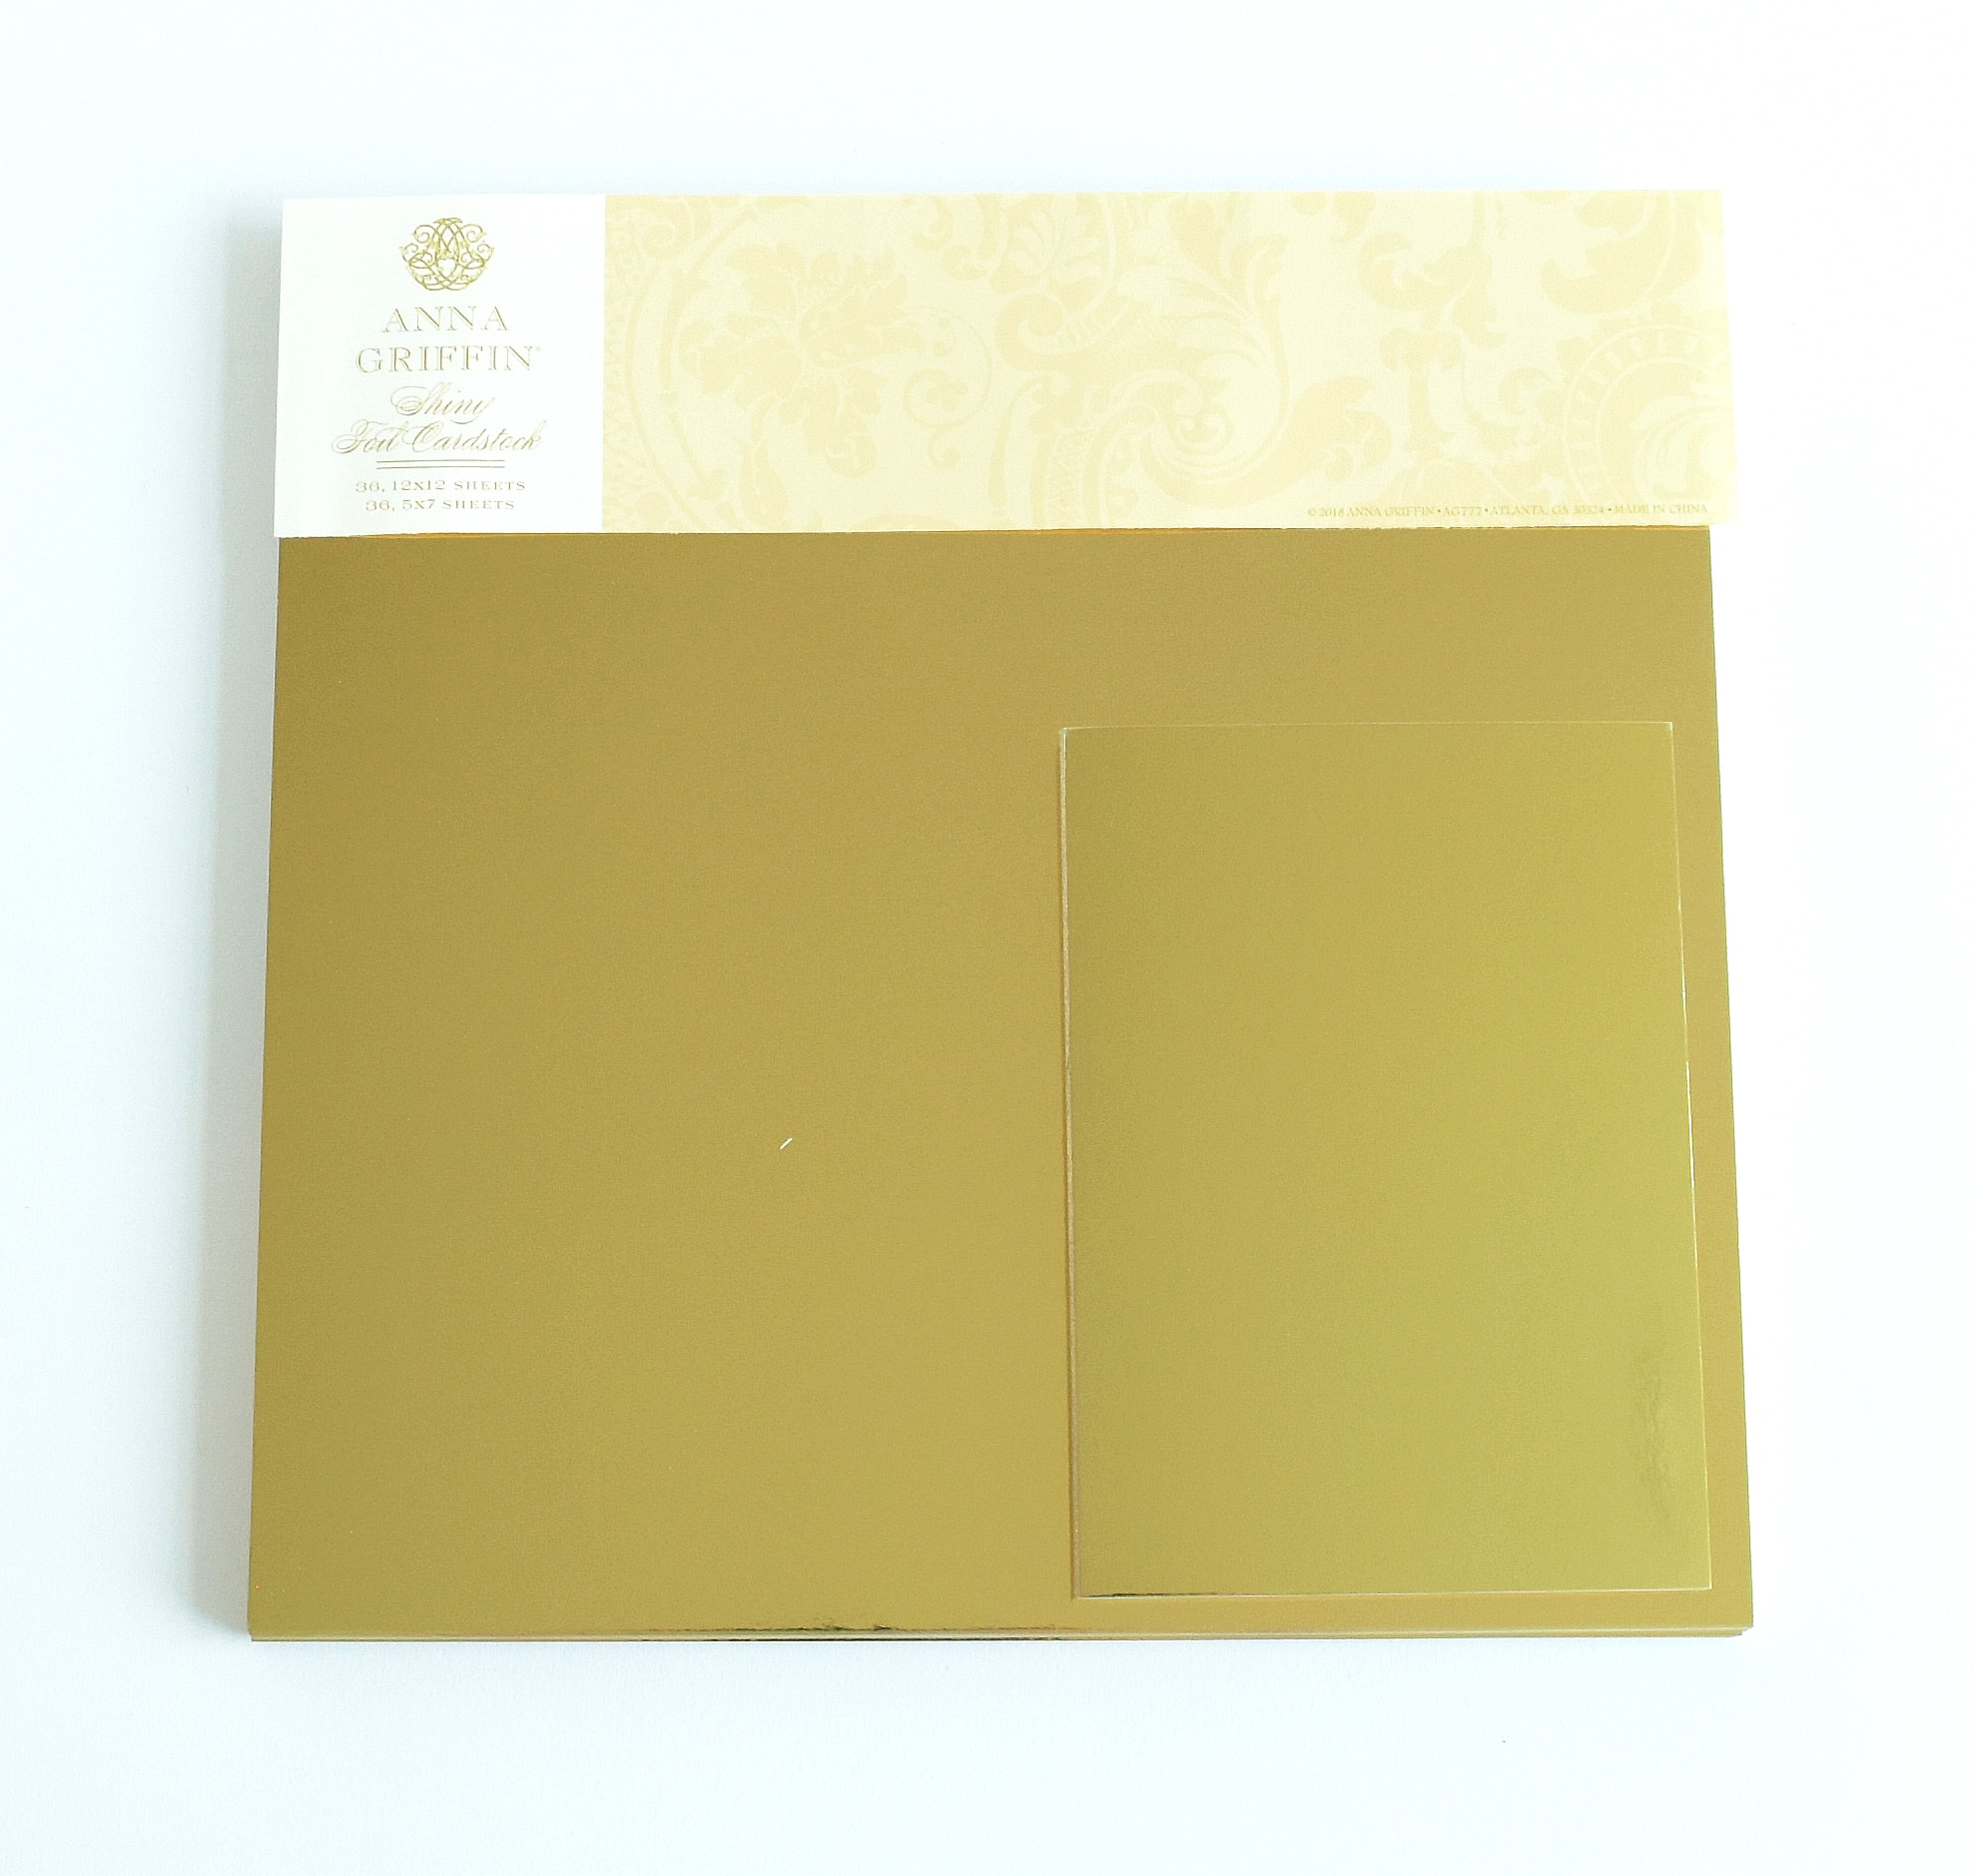 d871f880f068 The shine on these sheets is so beautiful, and make any diecut or  embellishment shine!